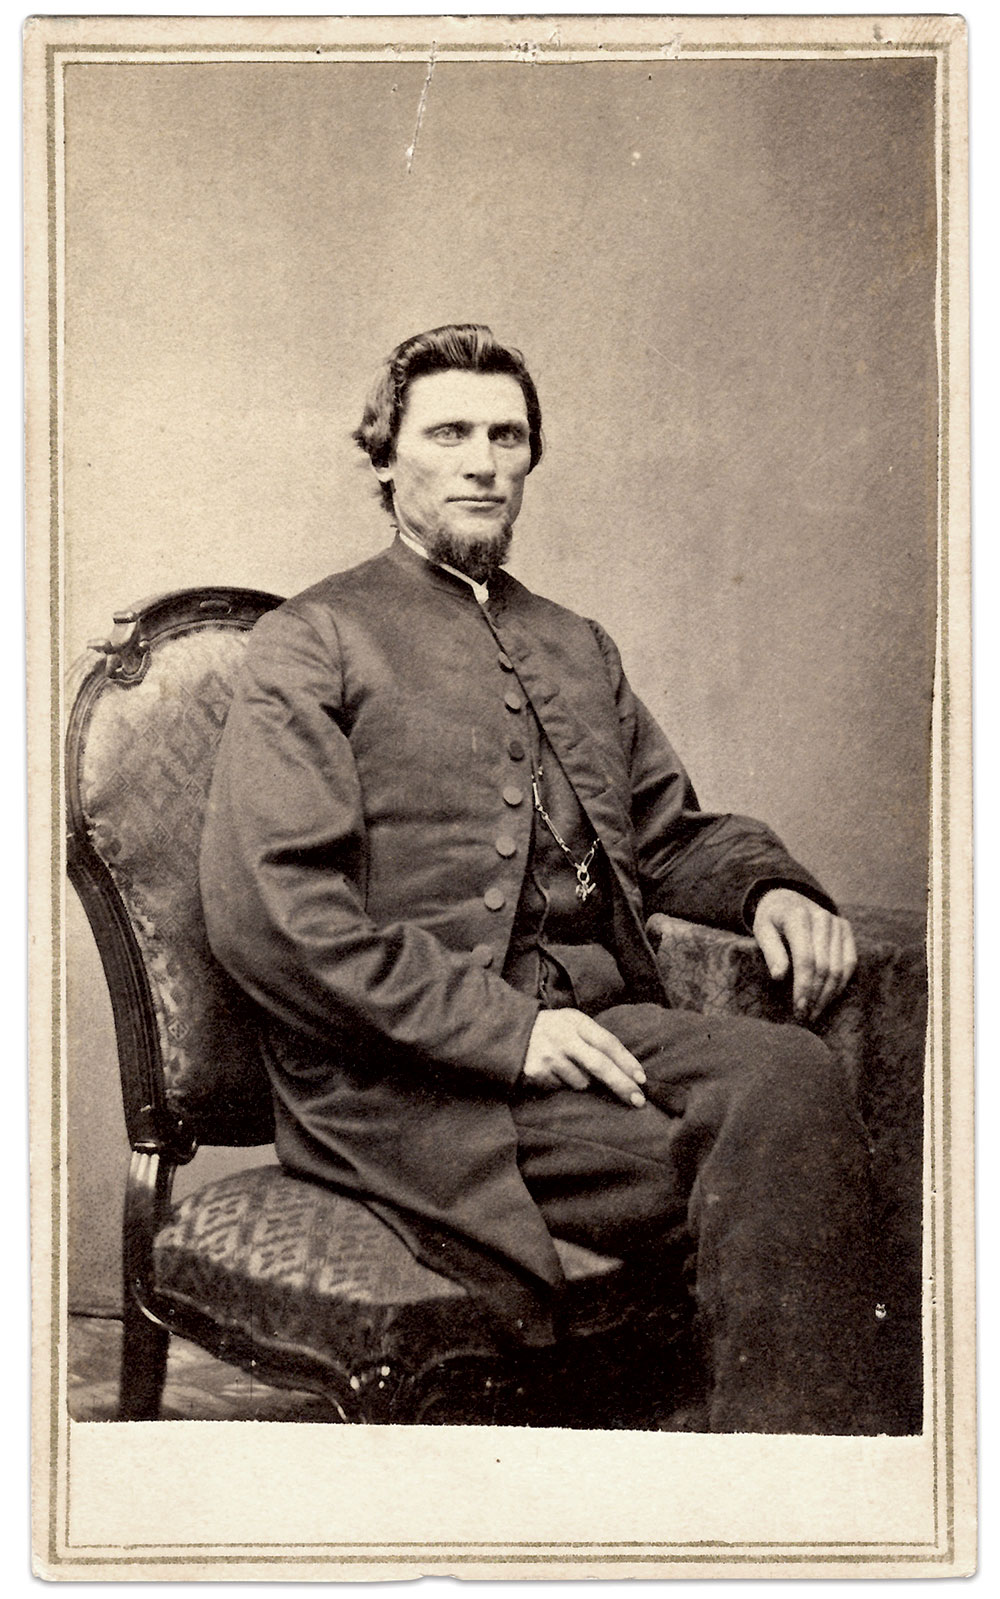 Carte de visite by Wilson & Shafer of Ottawa, Ill. Mike Cunningham Collection.